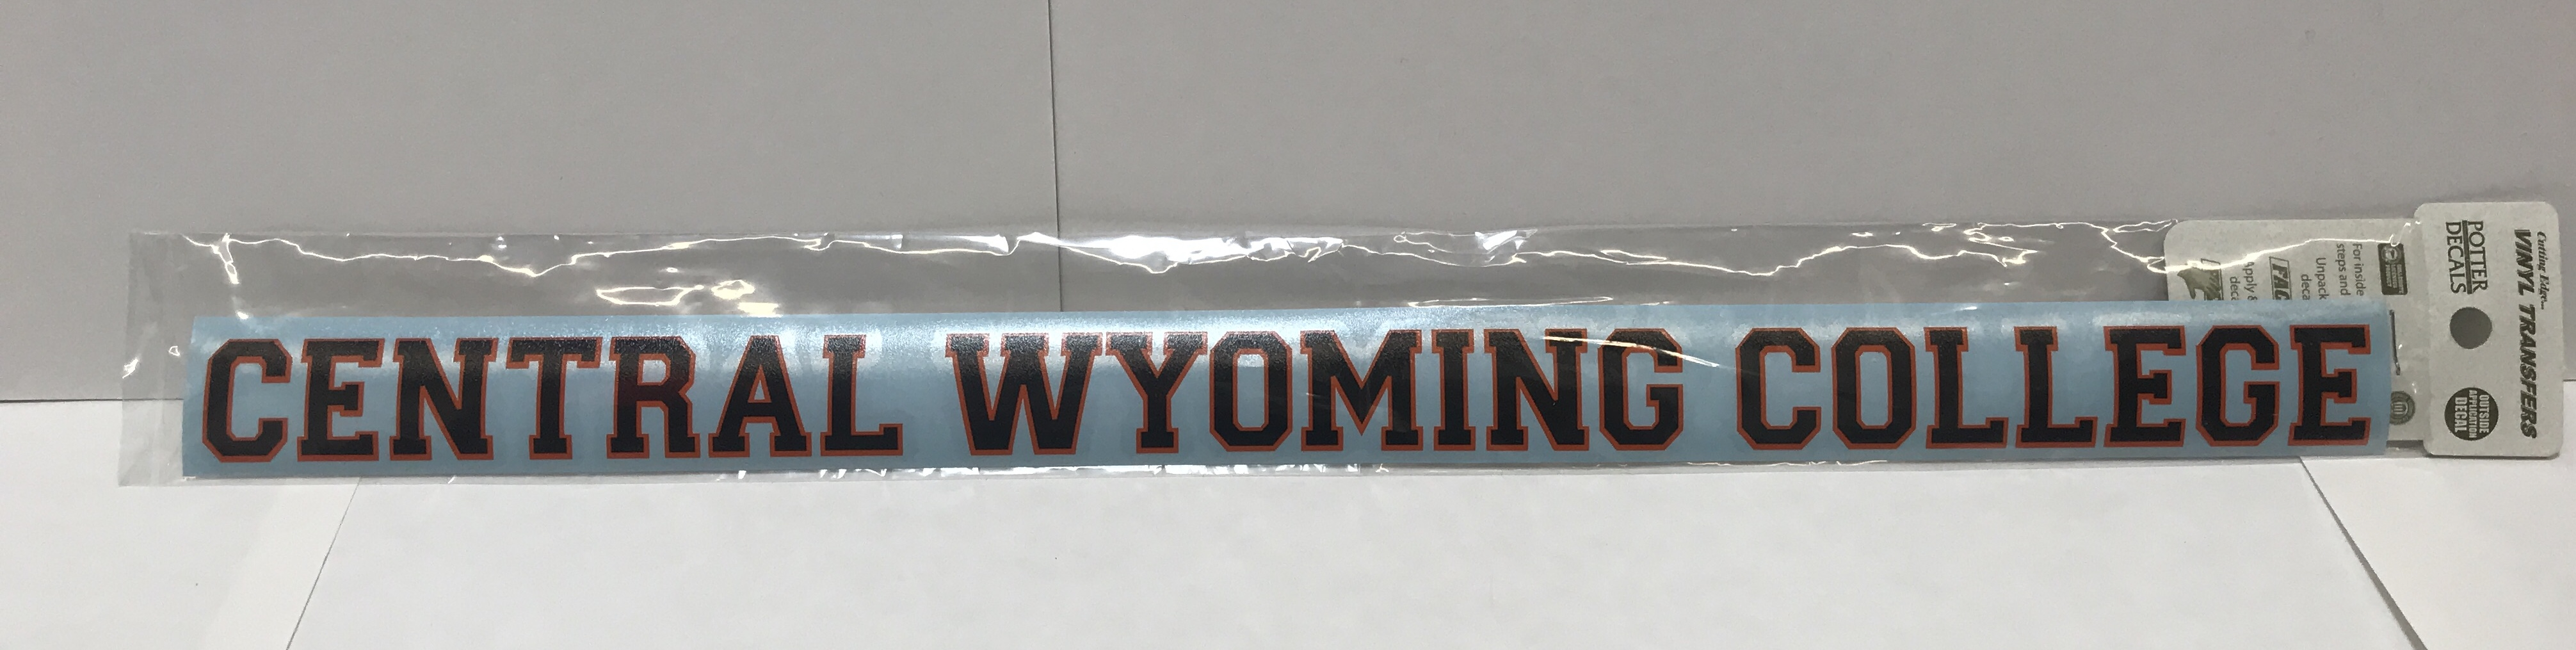 Central Wyoming College Window Decal